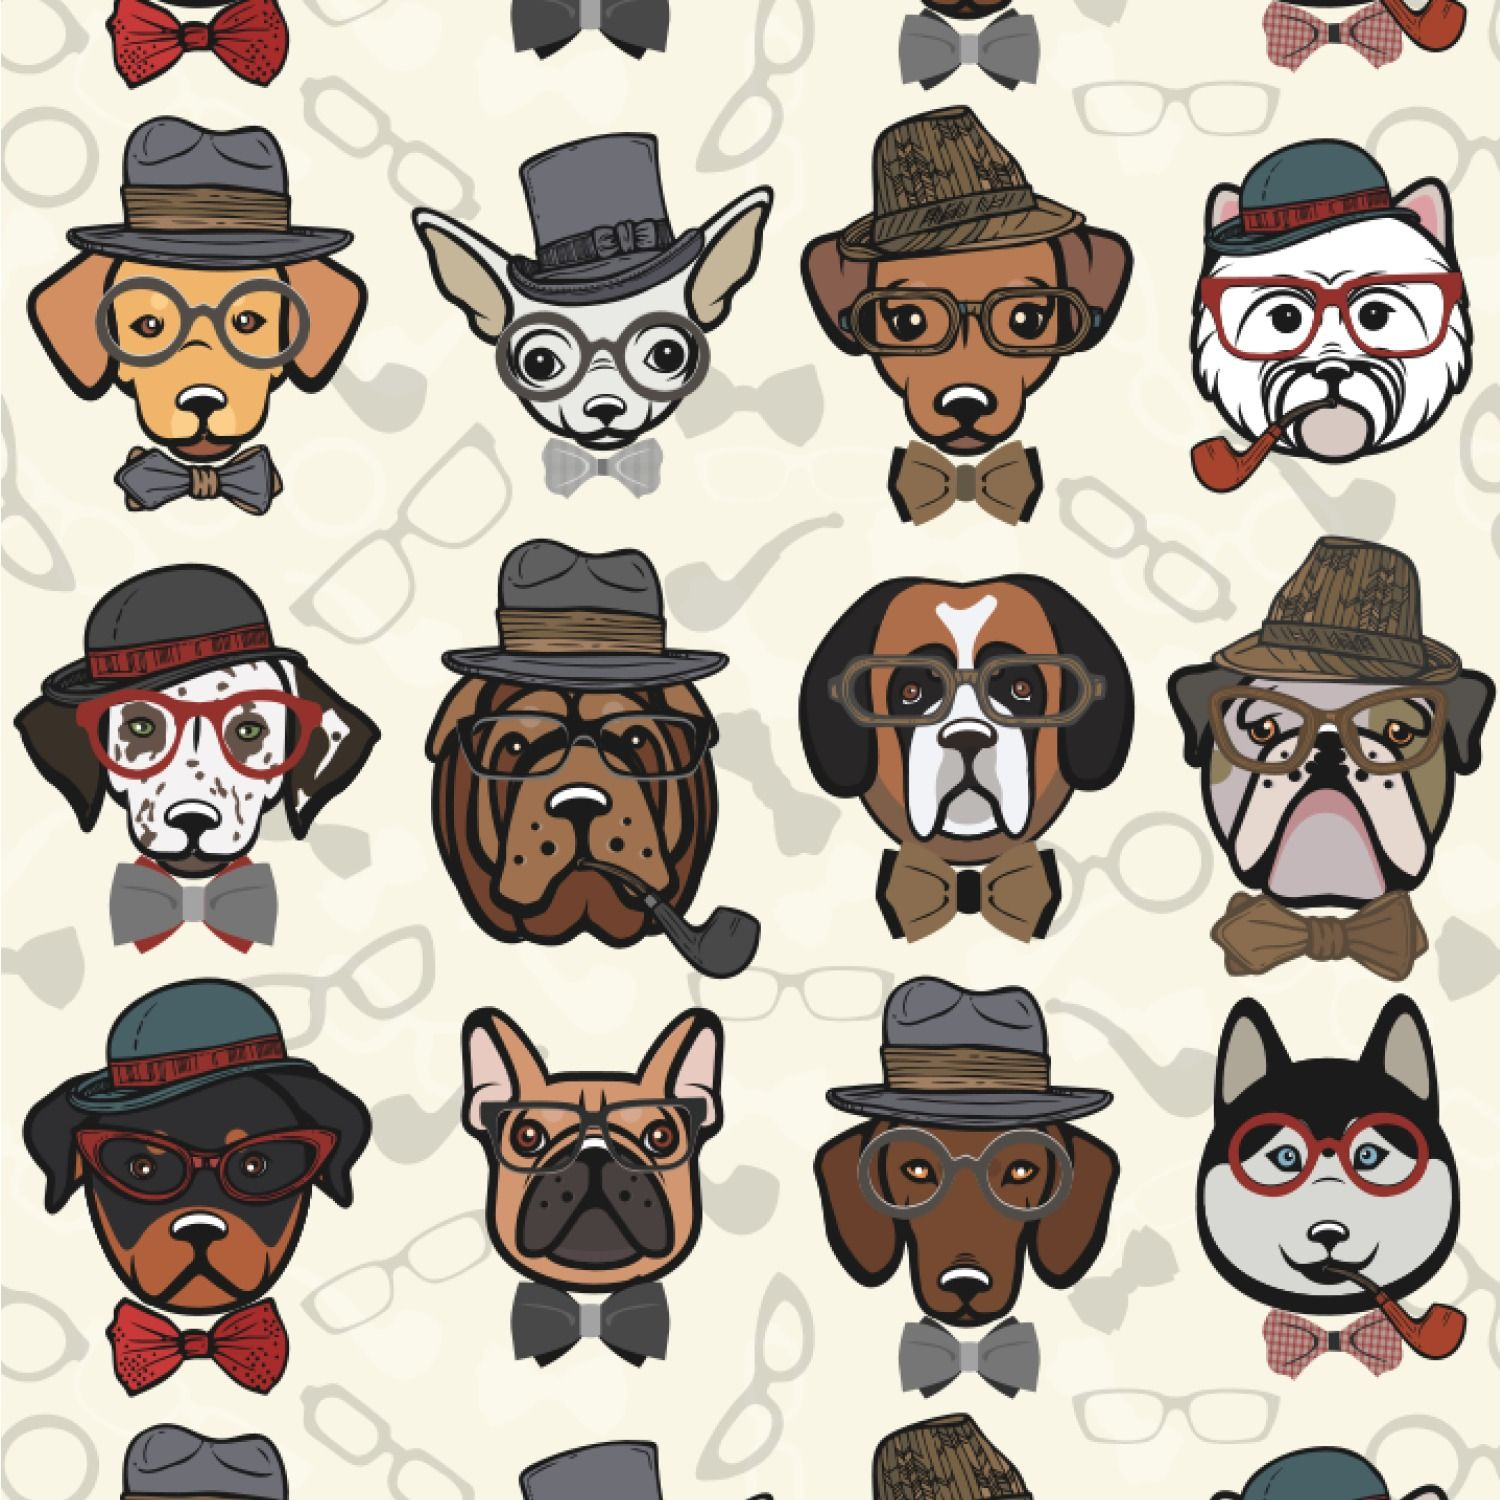 1500x1500 2020 Other | Images: Hipster Dog Wallpaper